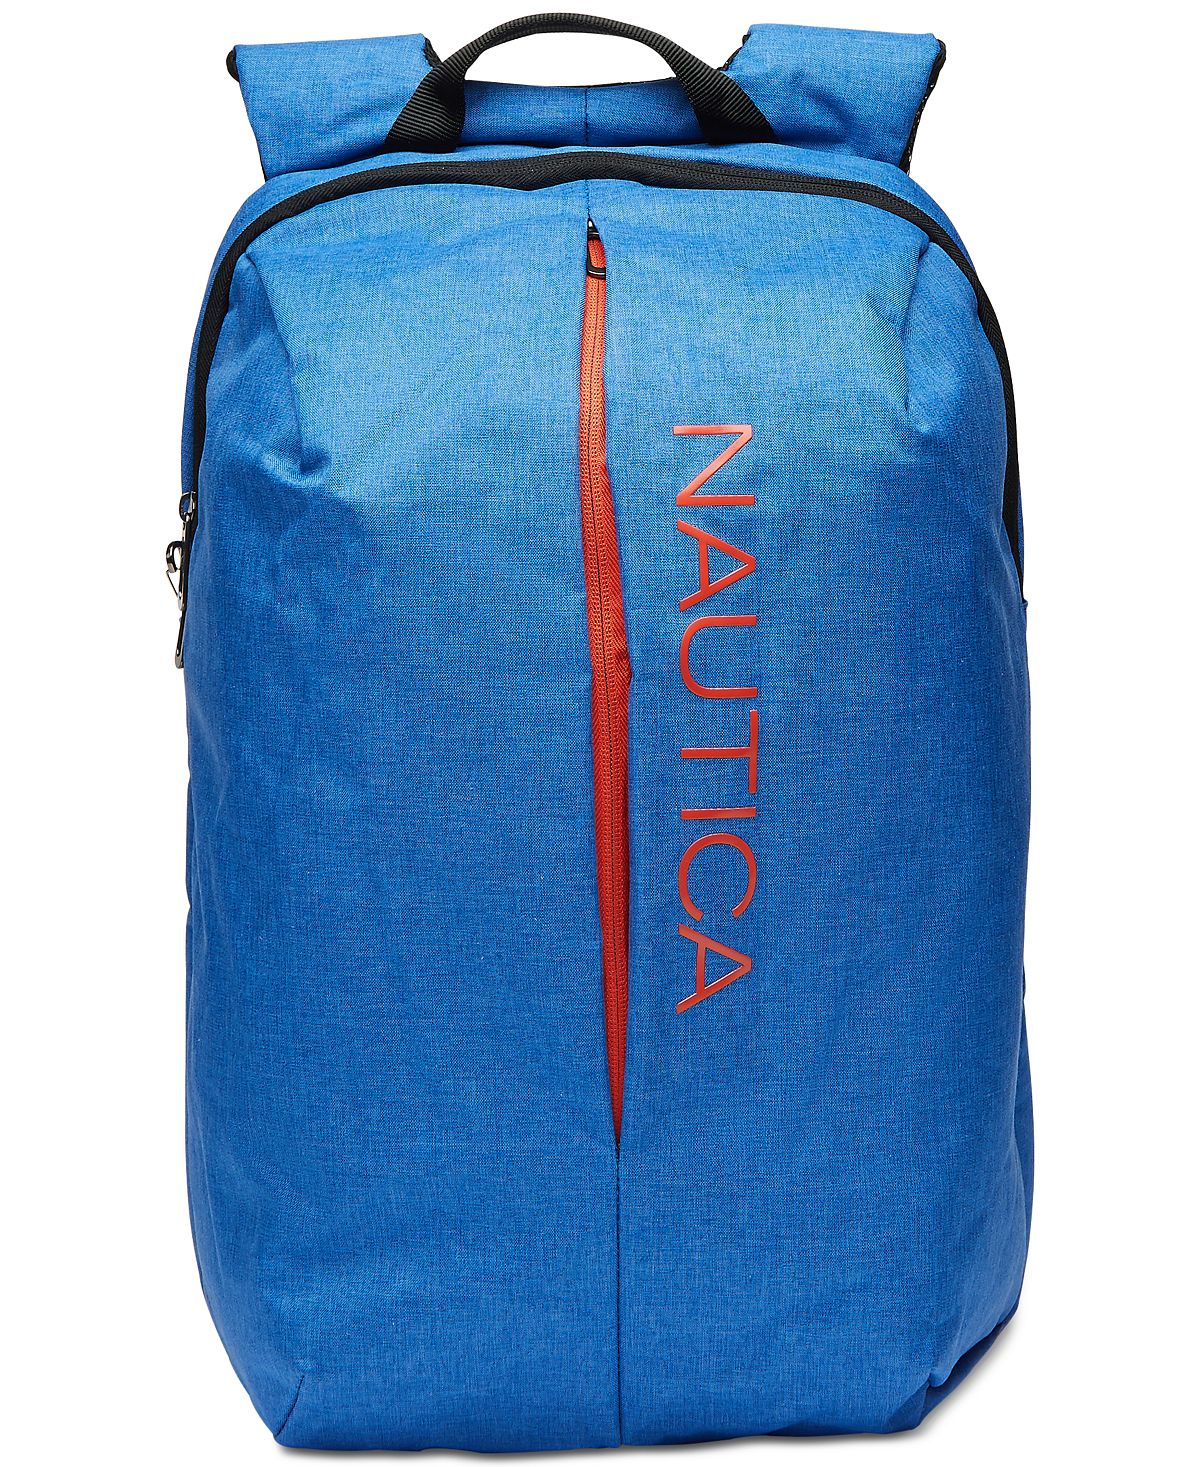 Nautica Laptop Backpack Blue